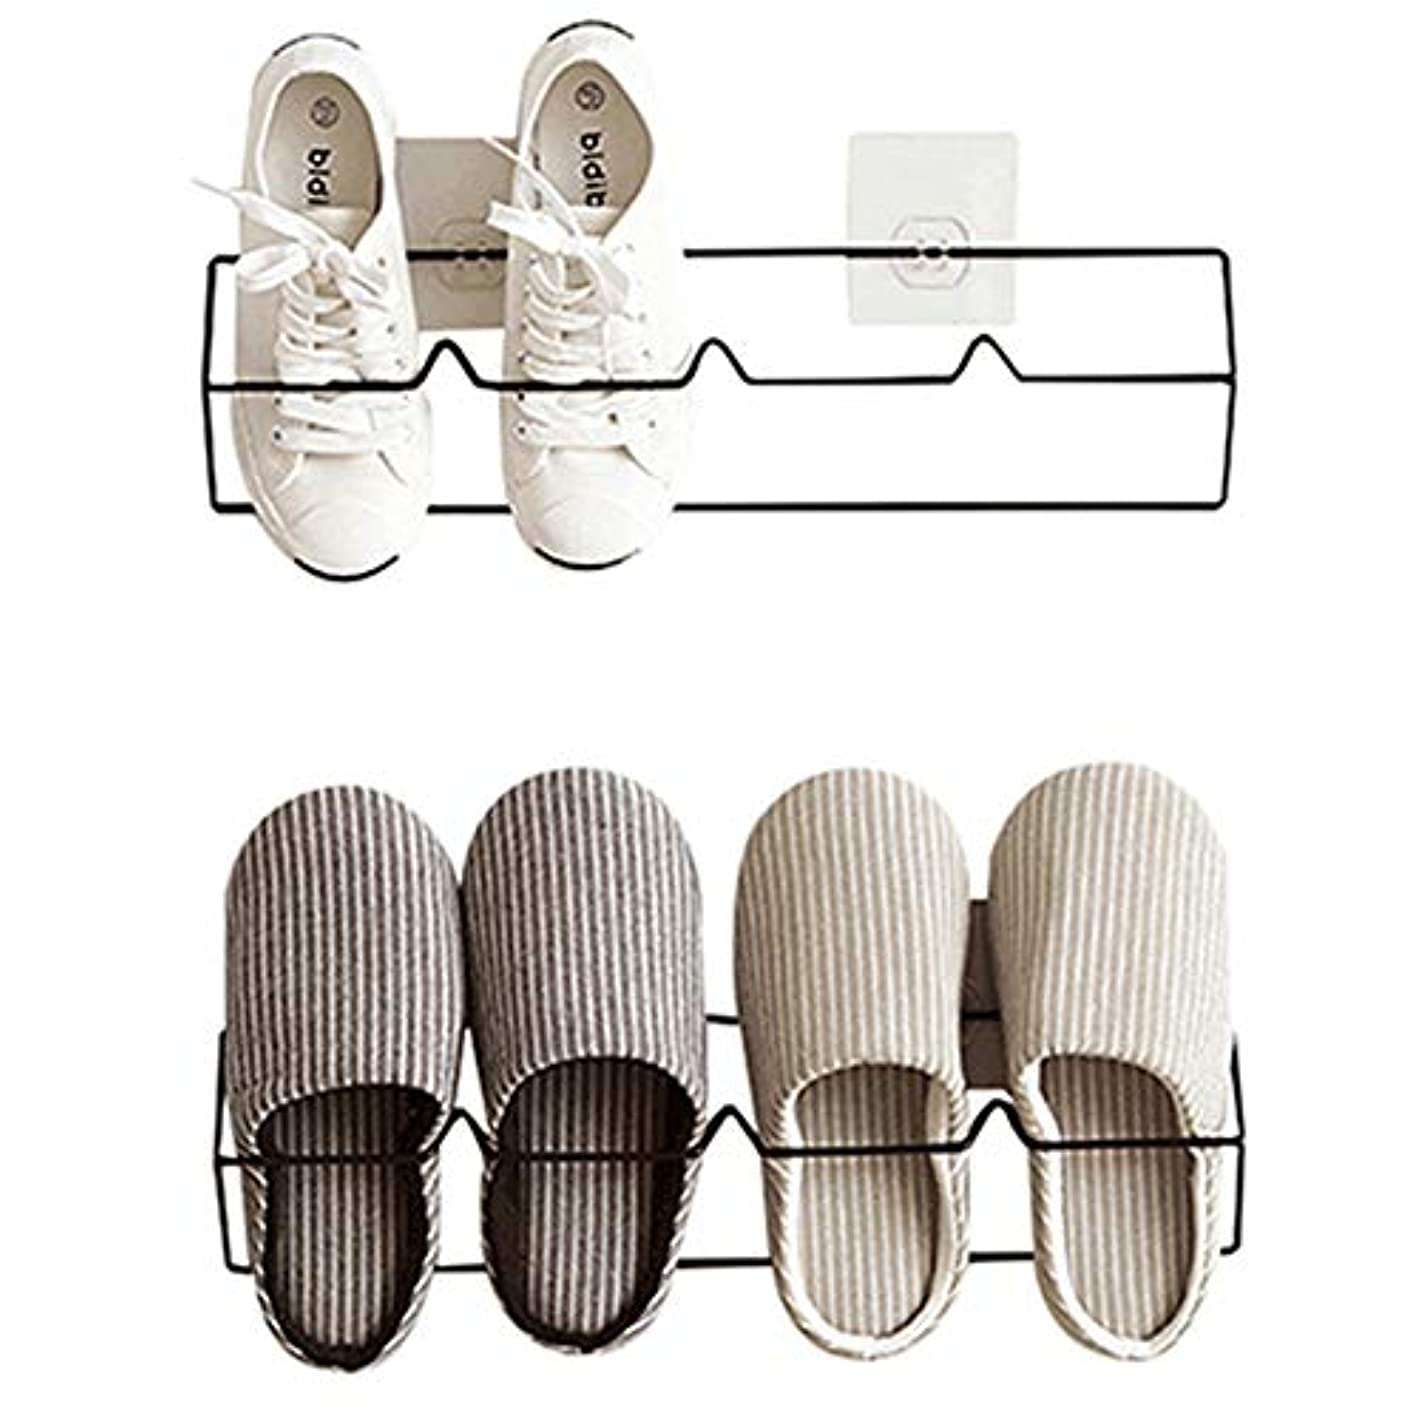 Esdella Shoes Rack Organizer Wall Mounted Storage Shelf Shoe Holder Keeps Shoes Off The Floor